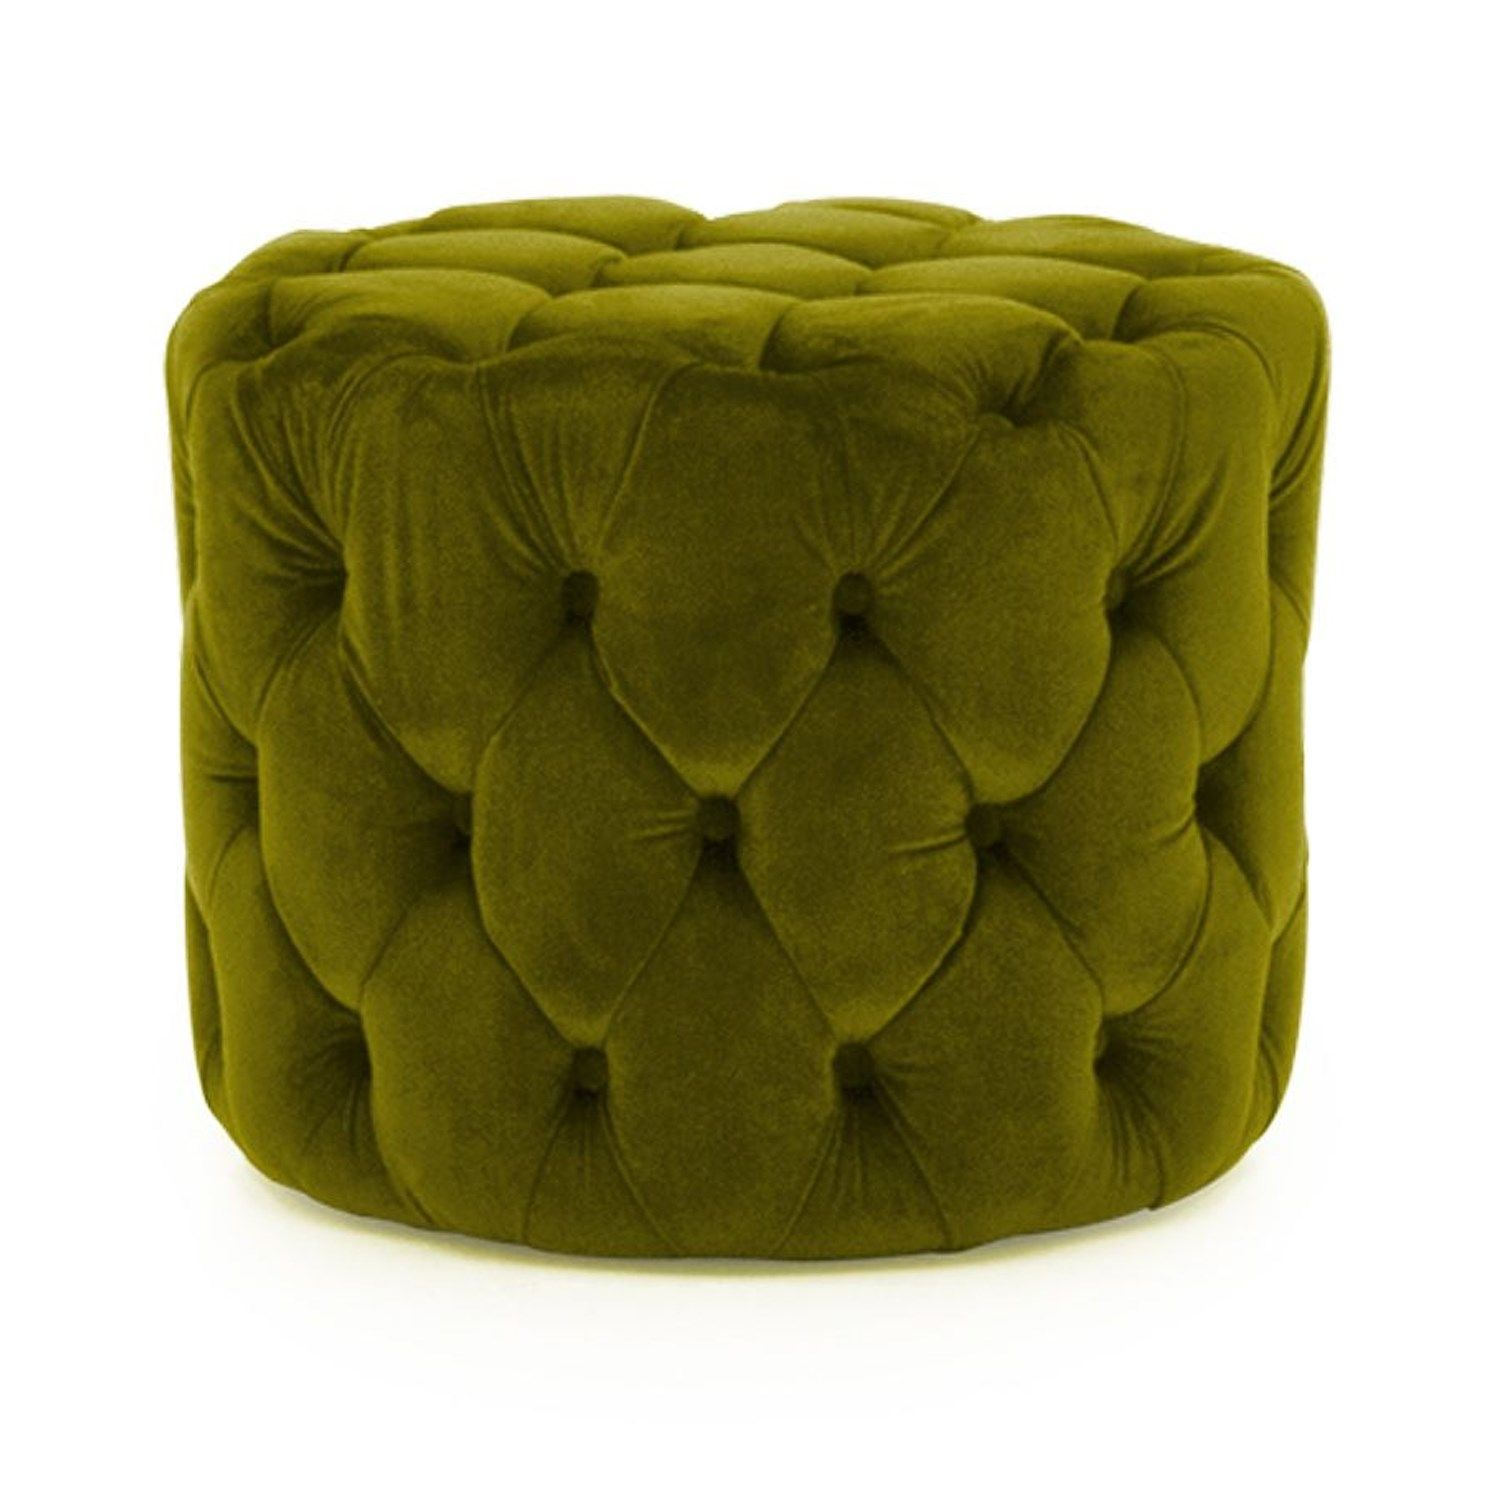 Astonishing Perkins Round Tufted Pouf Footstool In Velvet Moss Green Machost Co Dining Chair Design Ideas Machostcouk